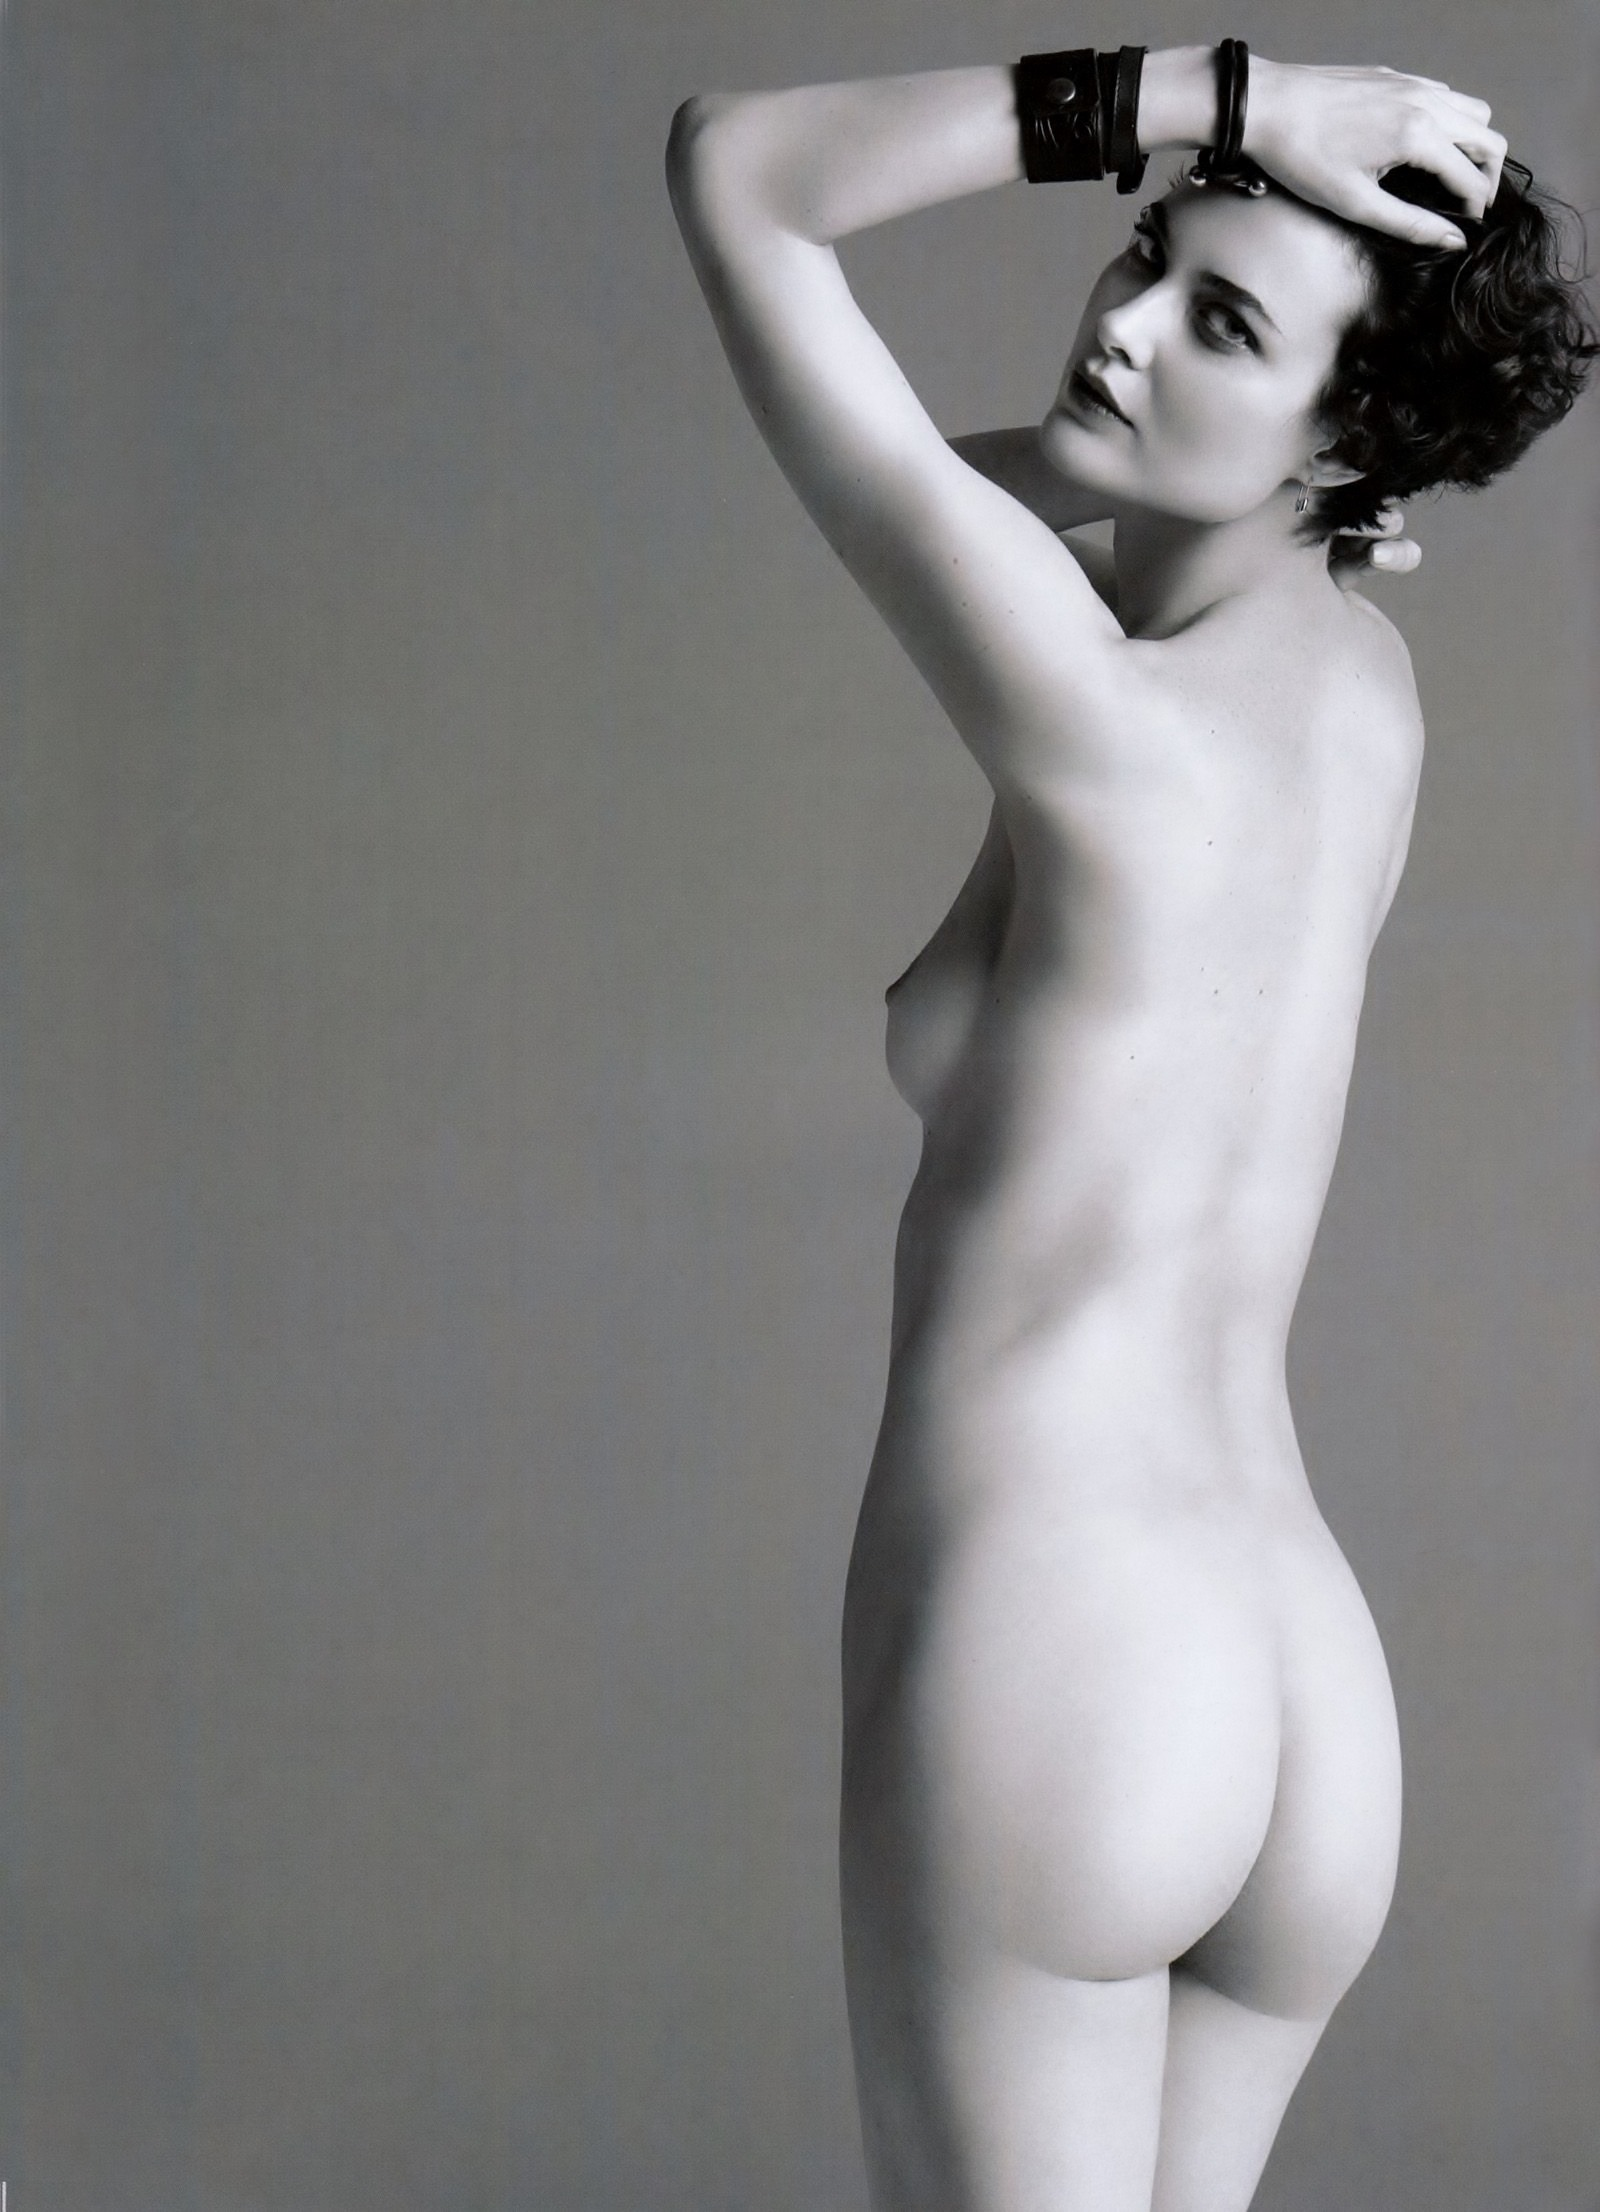 Join. agree Naked women in harlow think